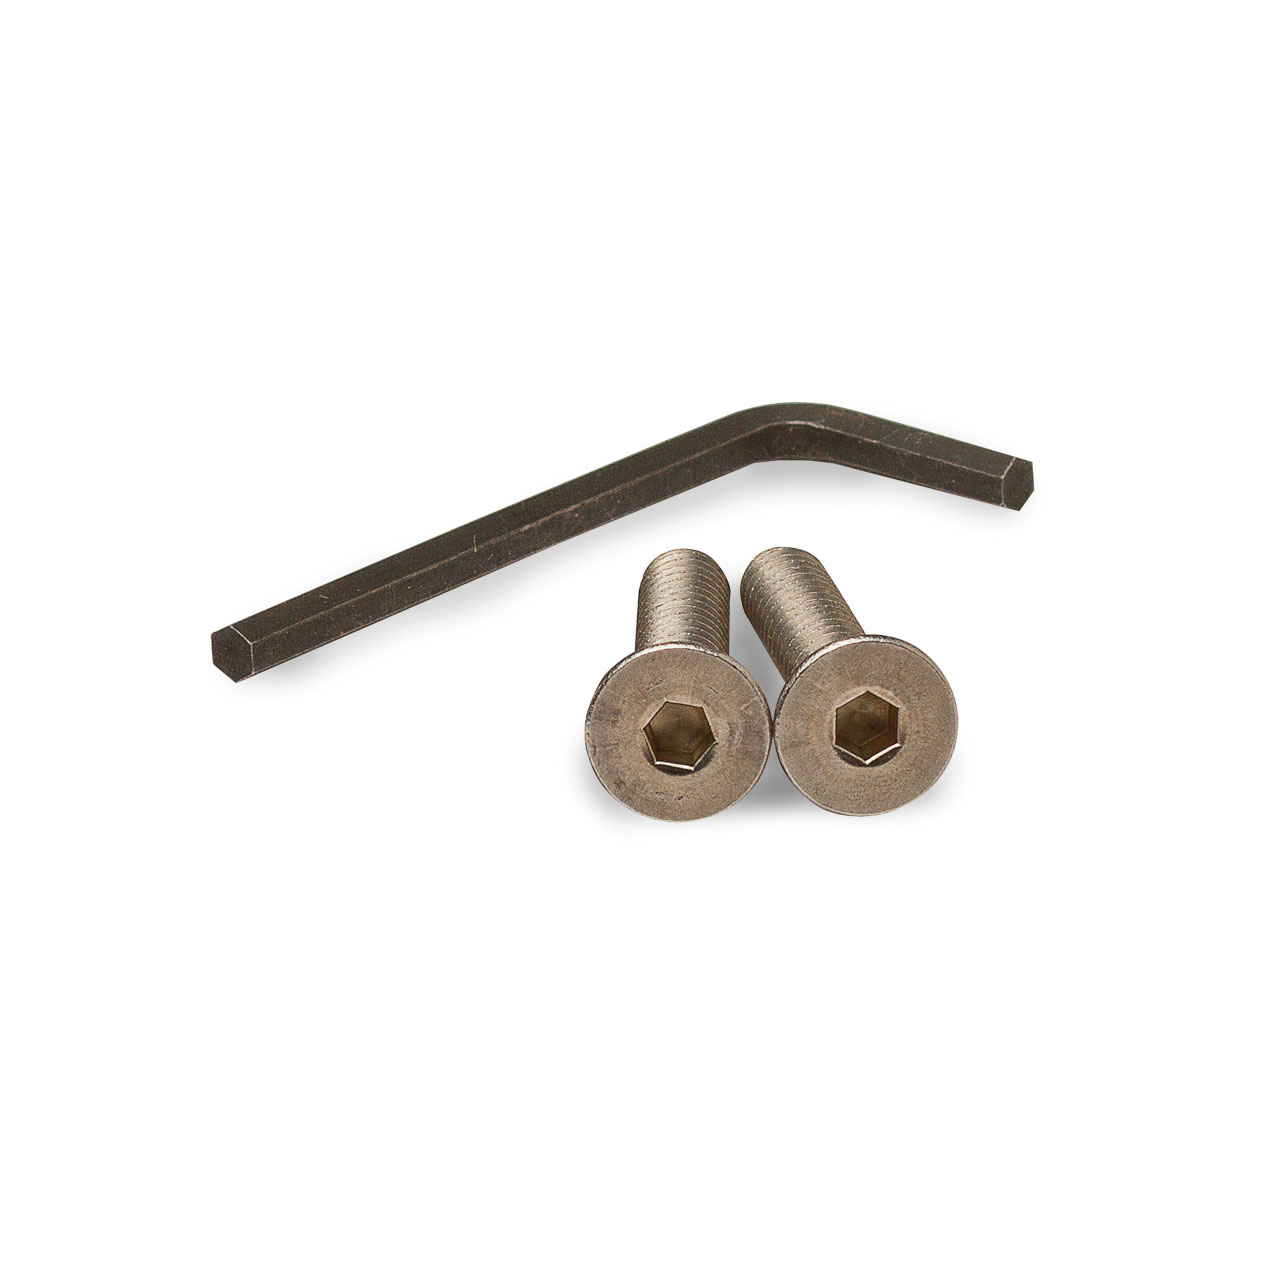 Orenco Systems Inc Orenco Rrlb W Kit Lid Screw And